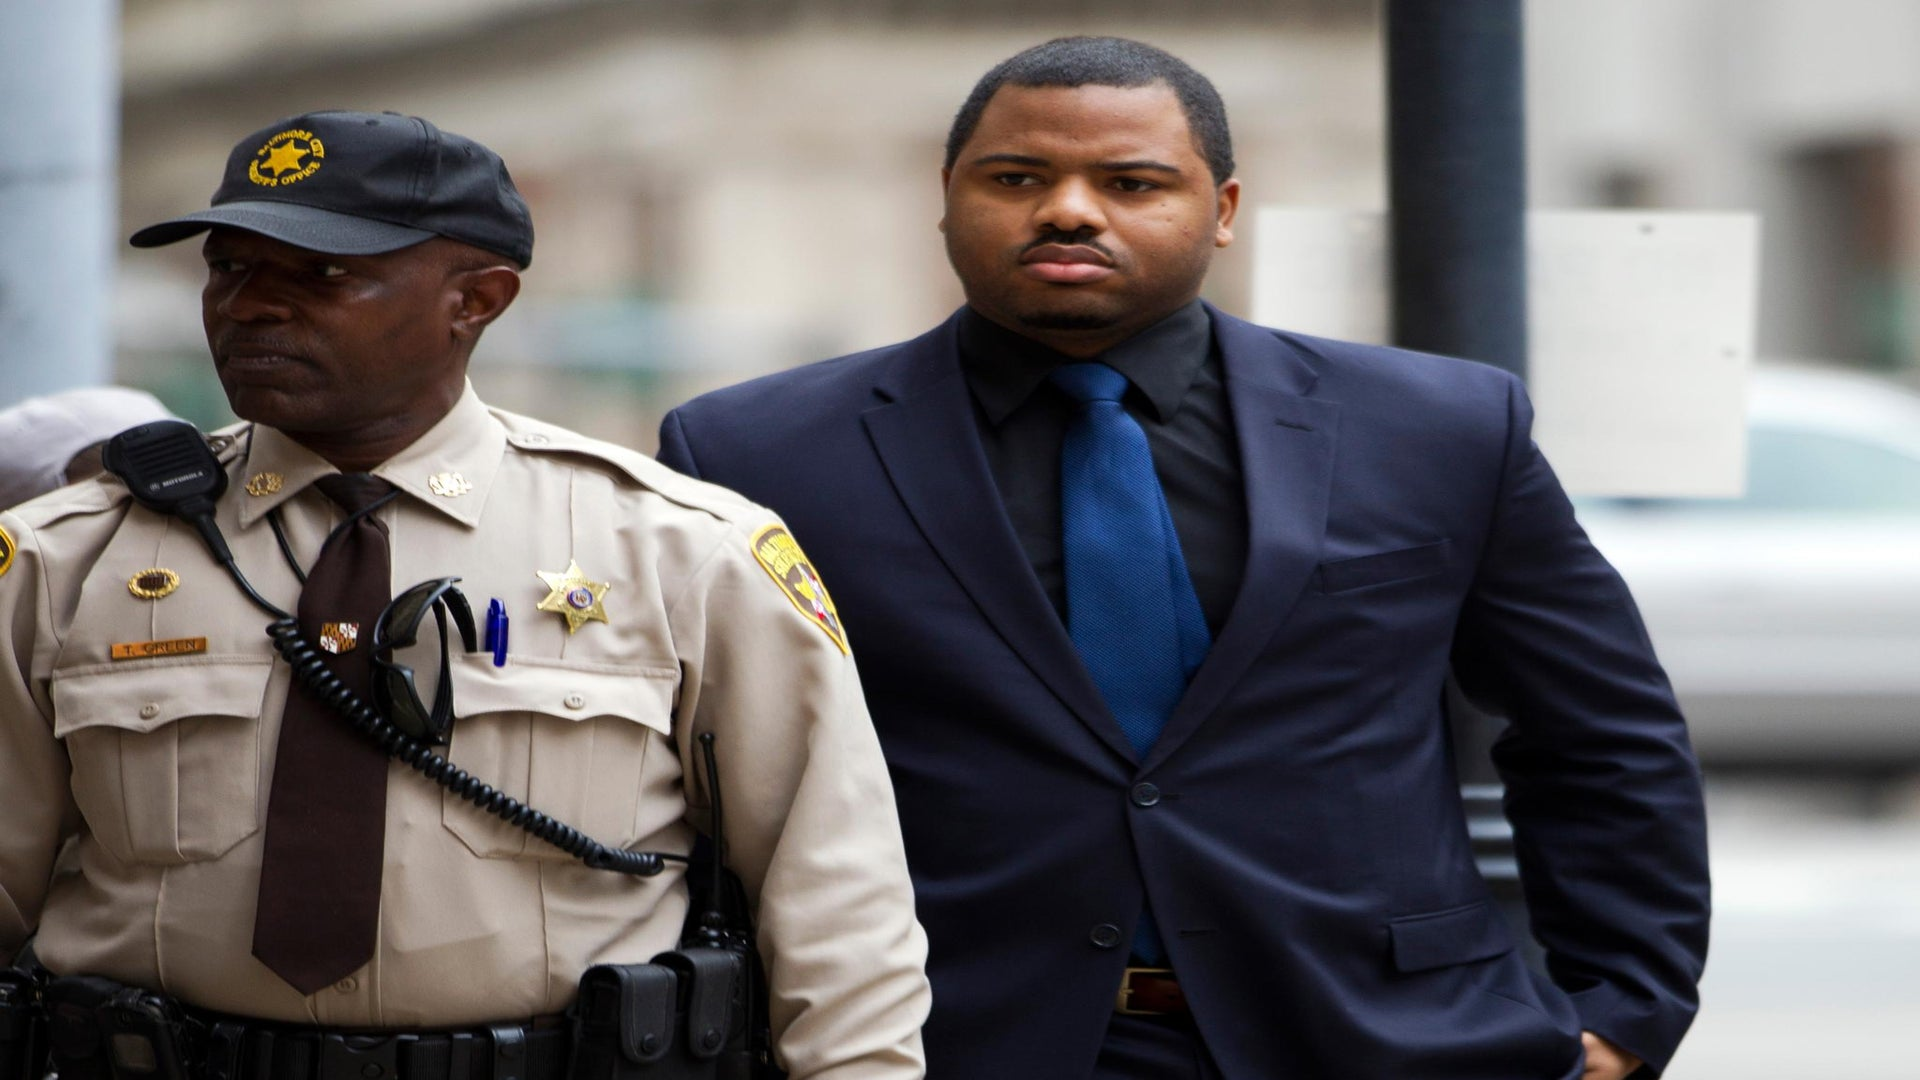 BREAKING: Judge Declares Mistrial for Officer Charged with Freddie Gray's Death